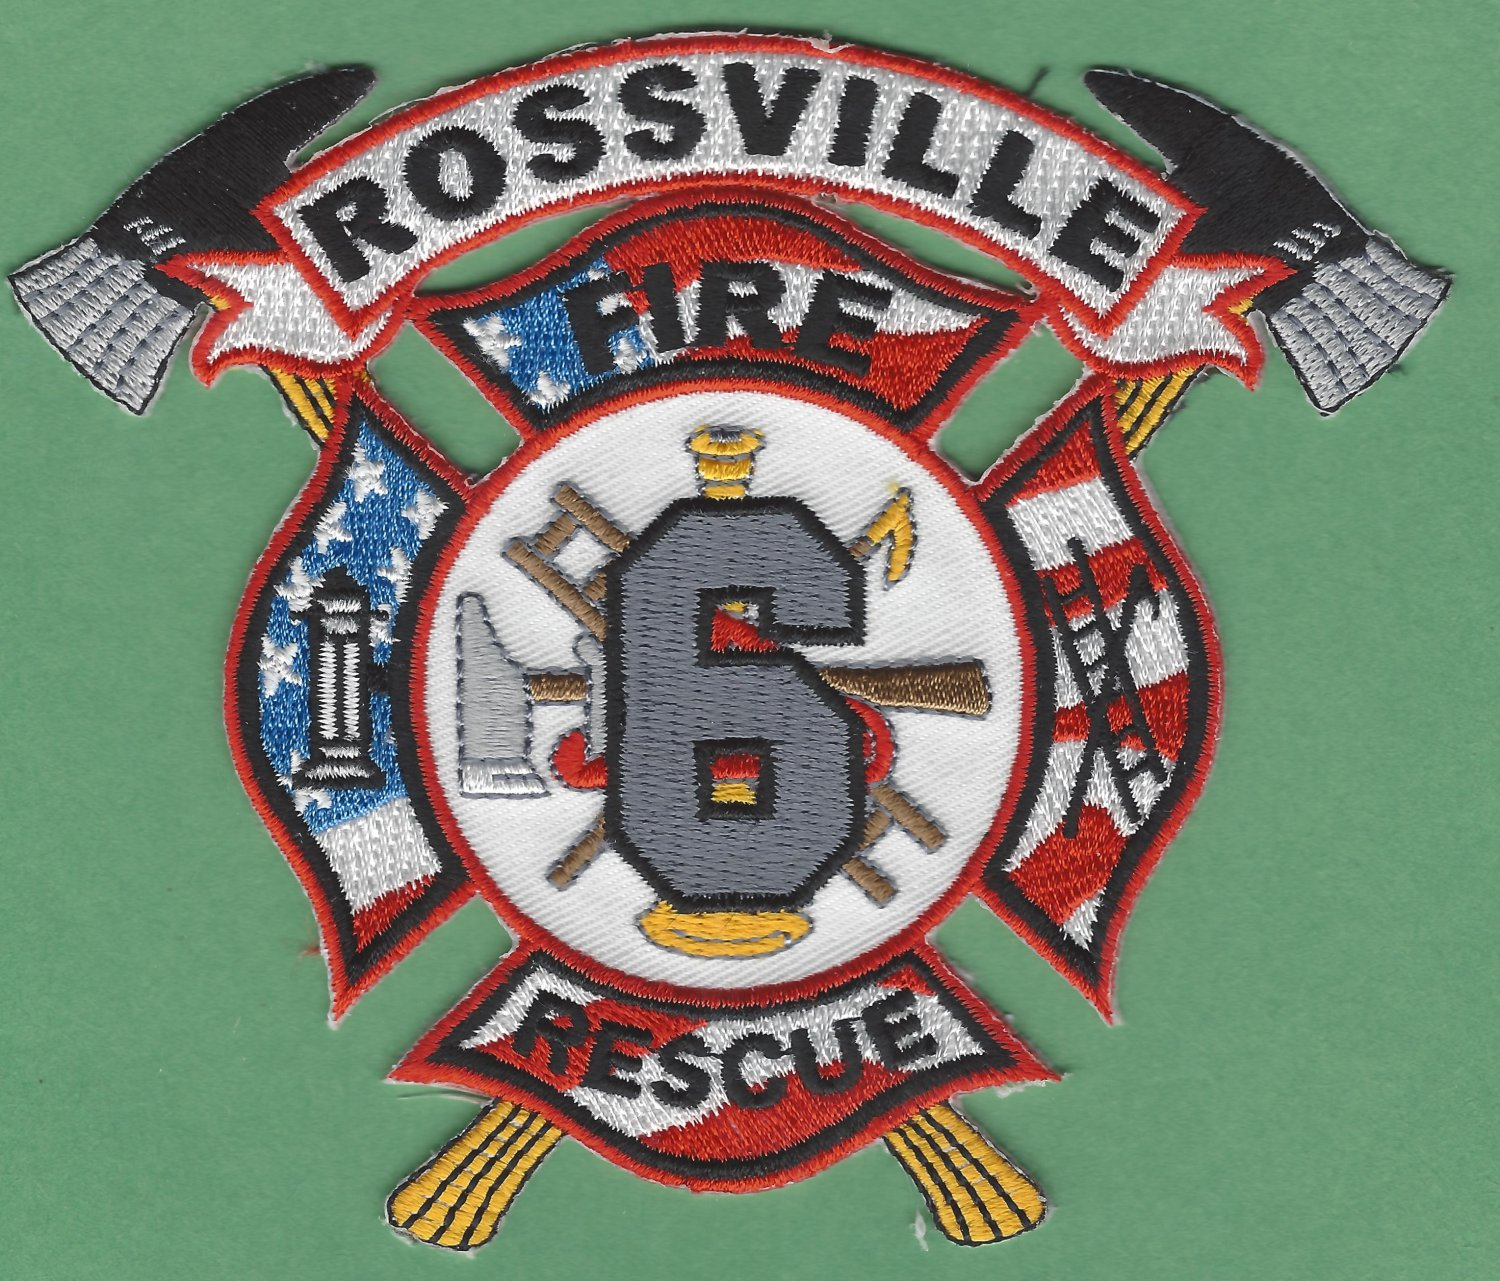 ROSSVILLE TENNESSEE FIRE RESCUE PATCH